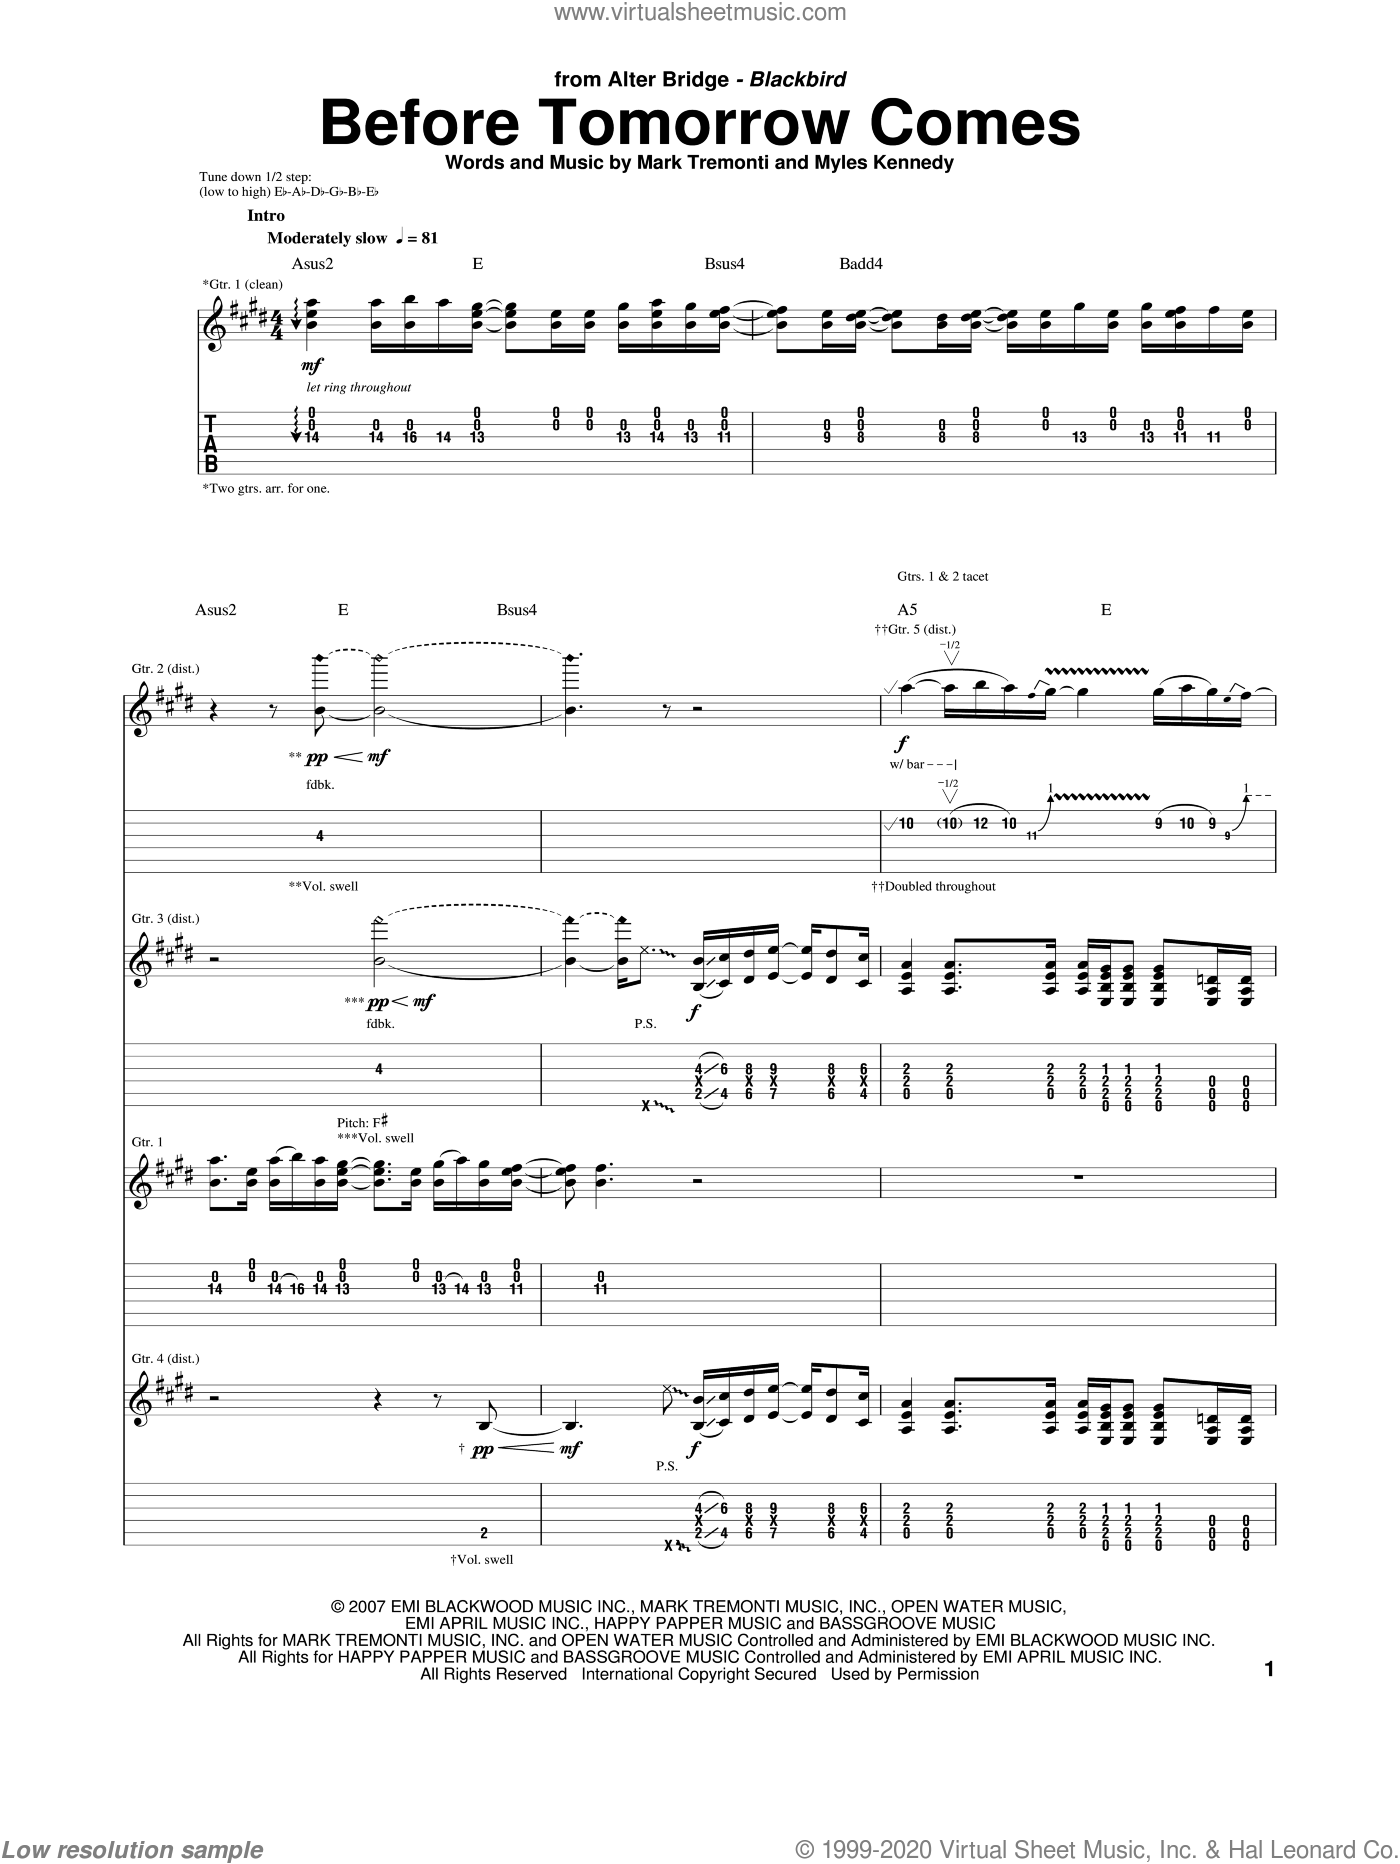 Before Tomorrow Comes sheet music for guitar (tablature) by Myles Kennedy